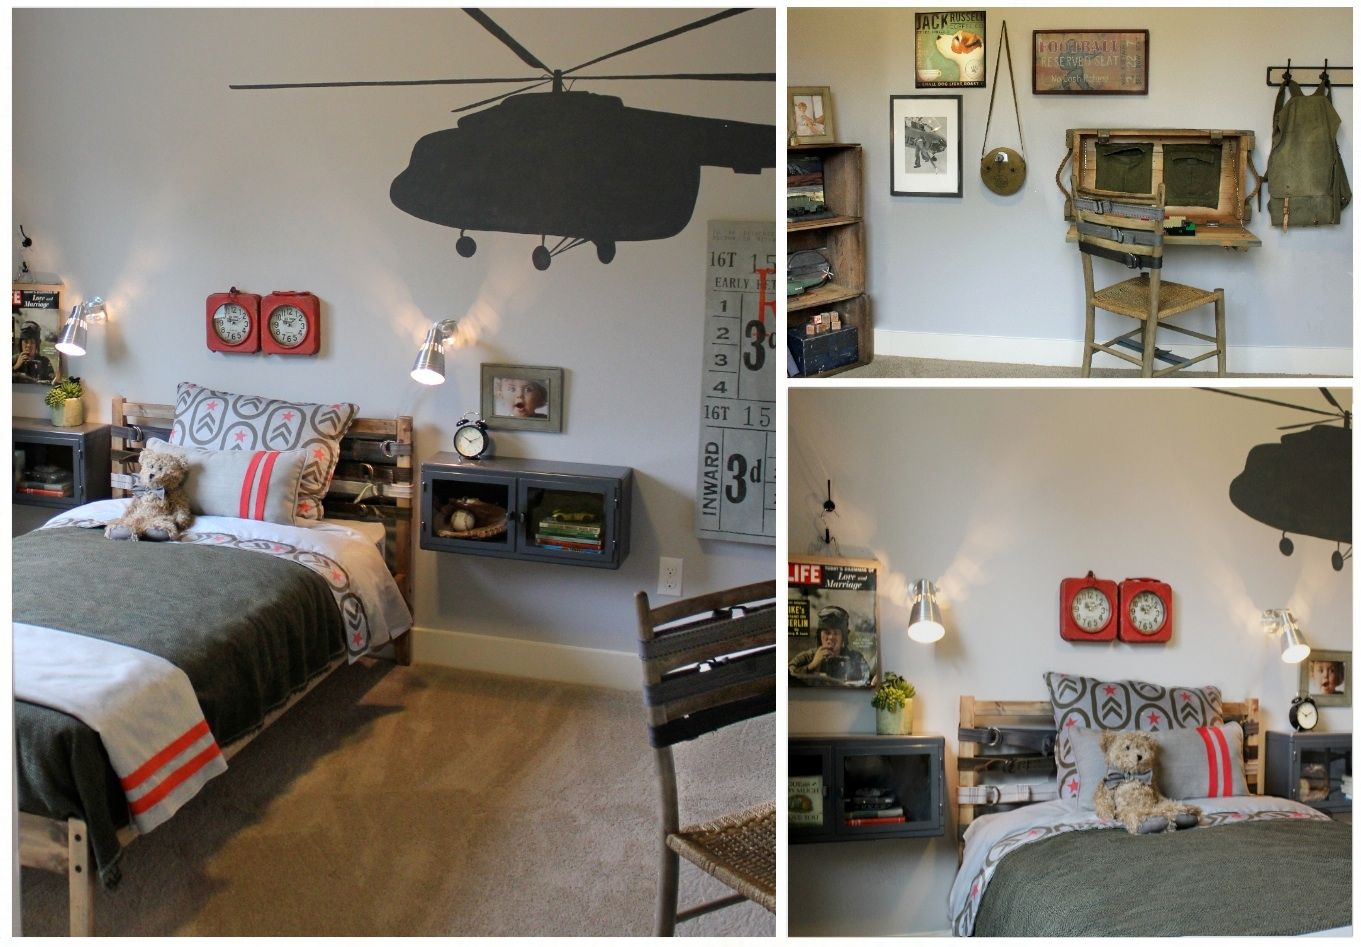 Military themed little boys roommilitary themed little boys room   My Design work   Pinterest  . Marine Corps Themed Room. Home Design Ideas